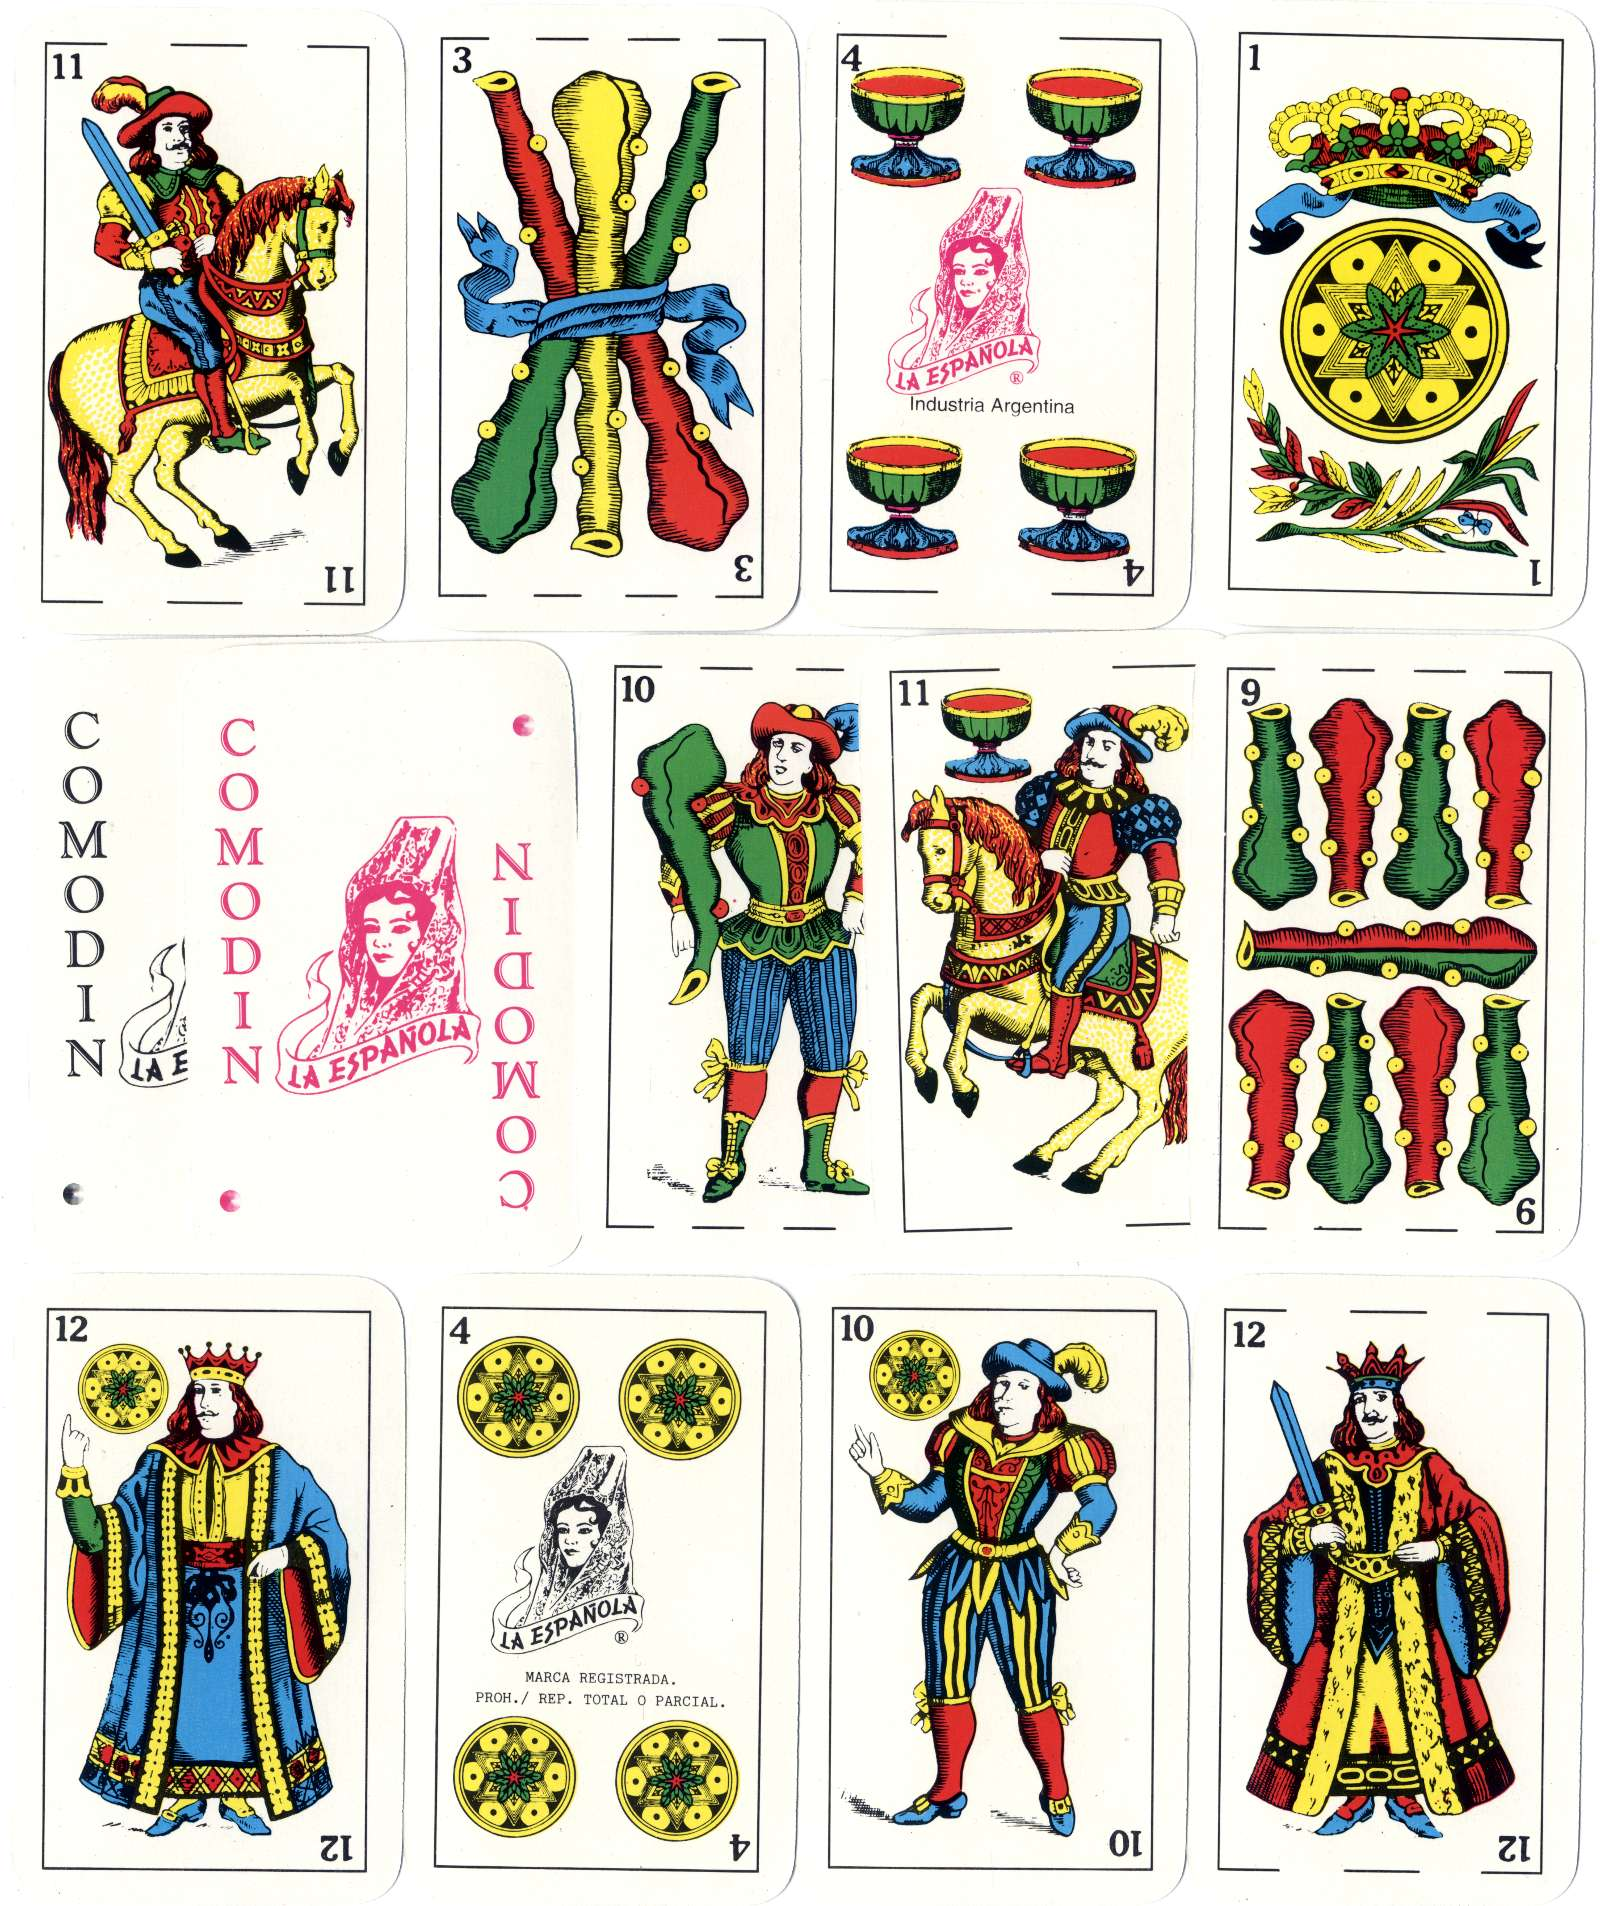 La Española Classic playing cards, Gráfica 2001's original classic 'La Española' Spanish-suited pack